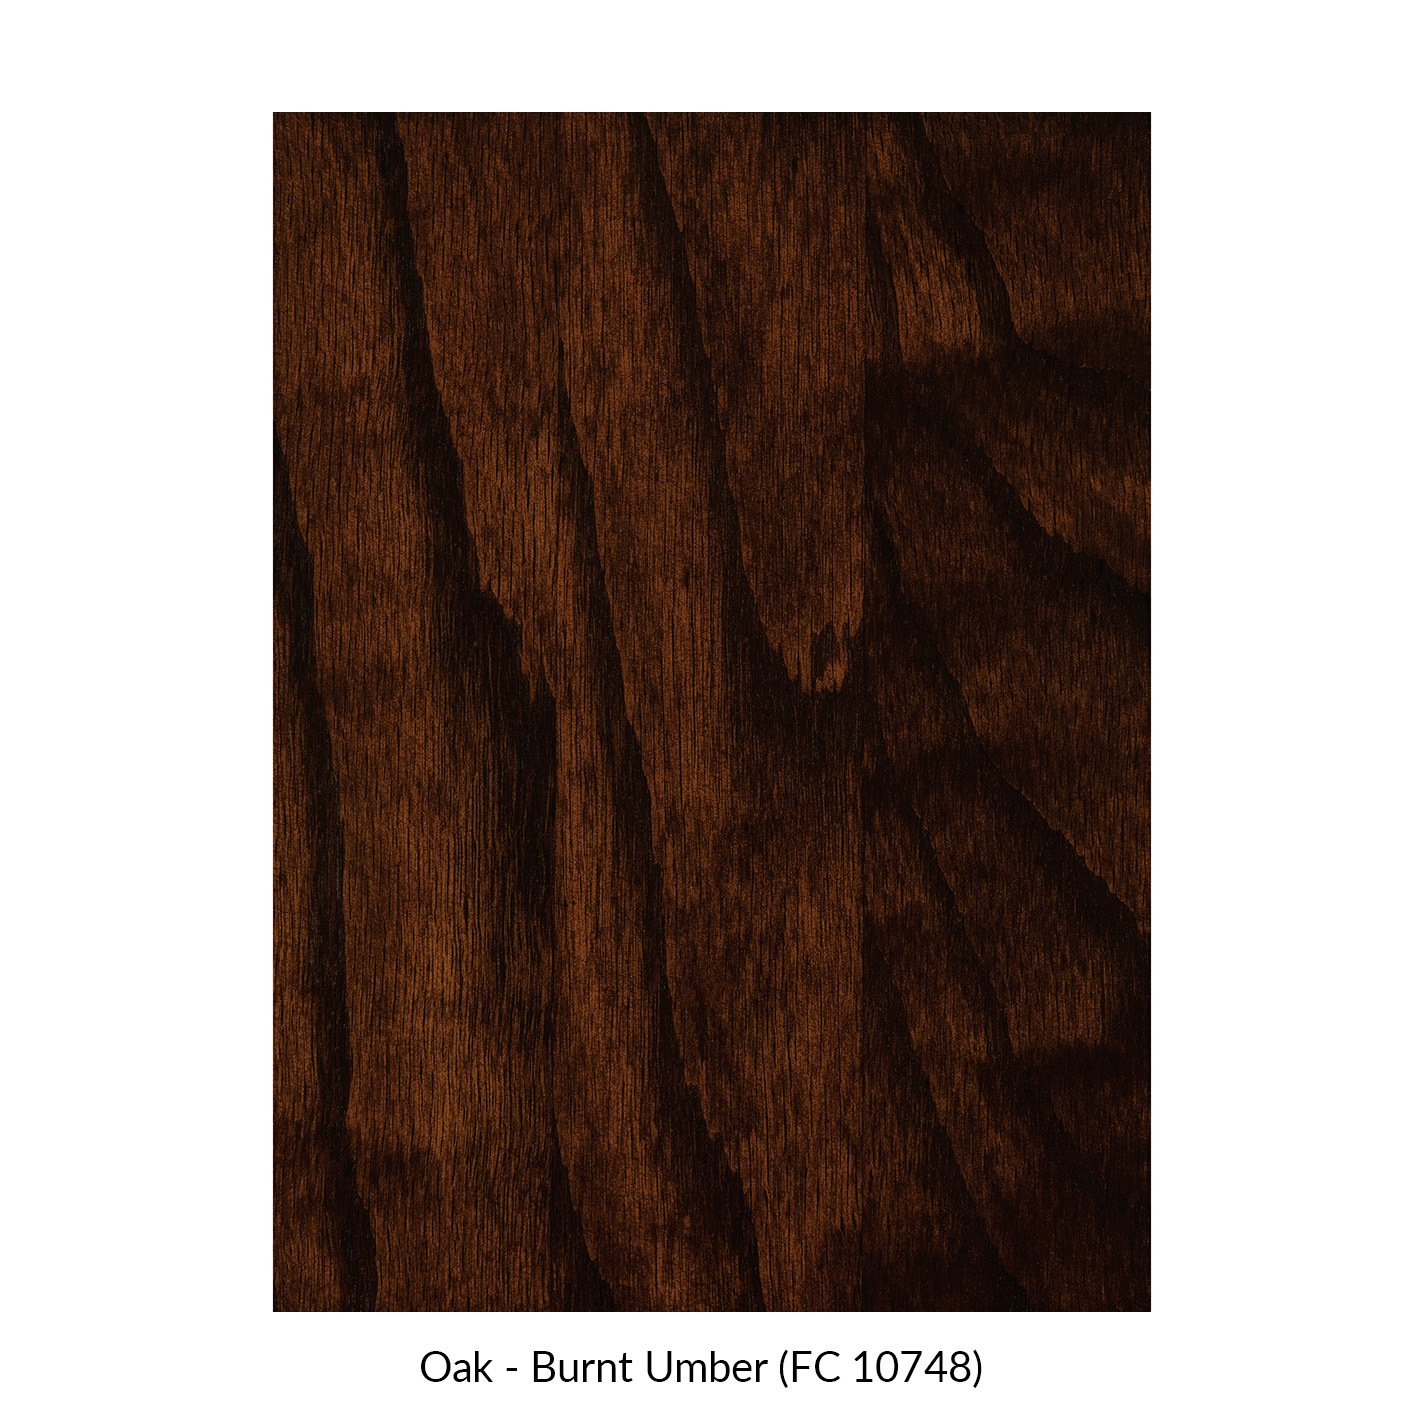 spectrum-oak-burnt-umber-fc-10748.jpg